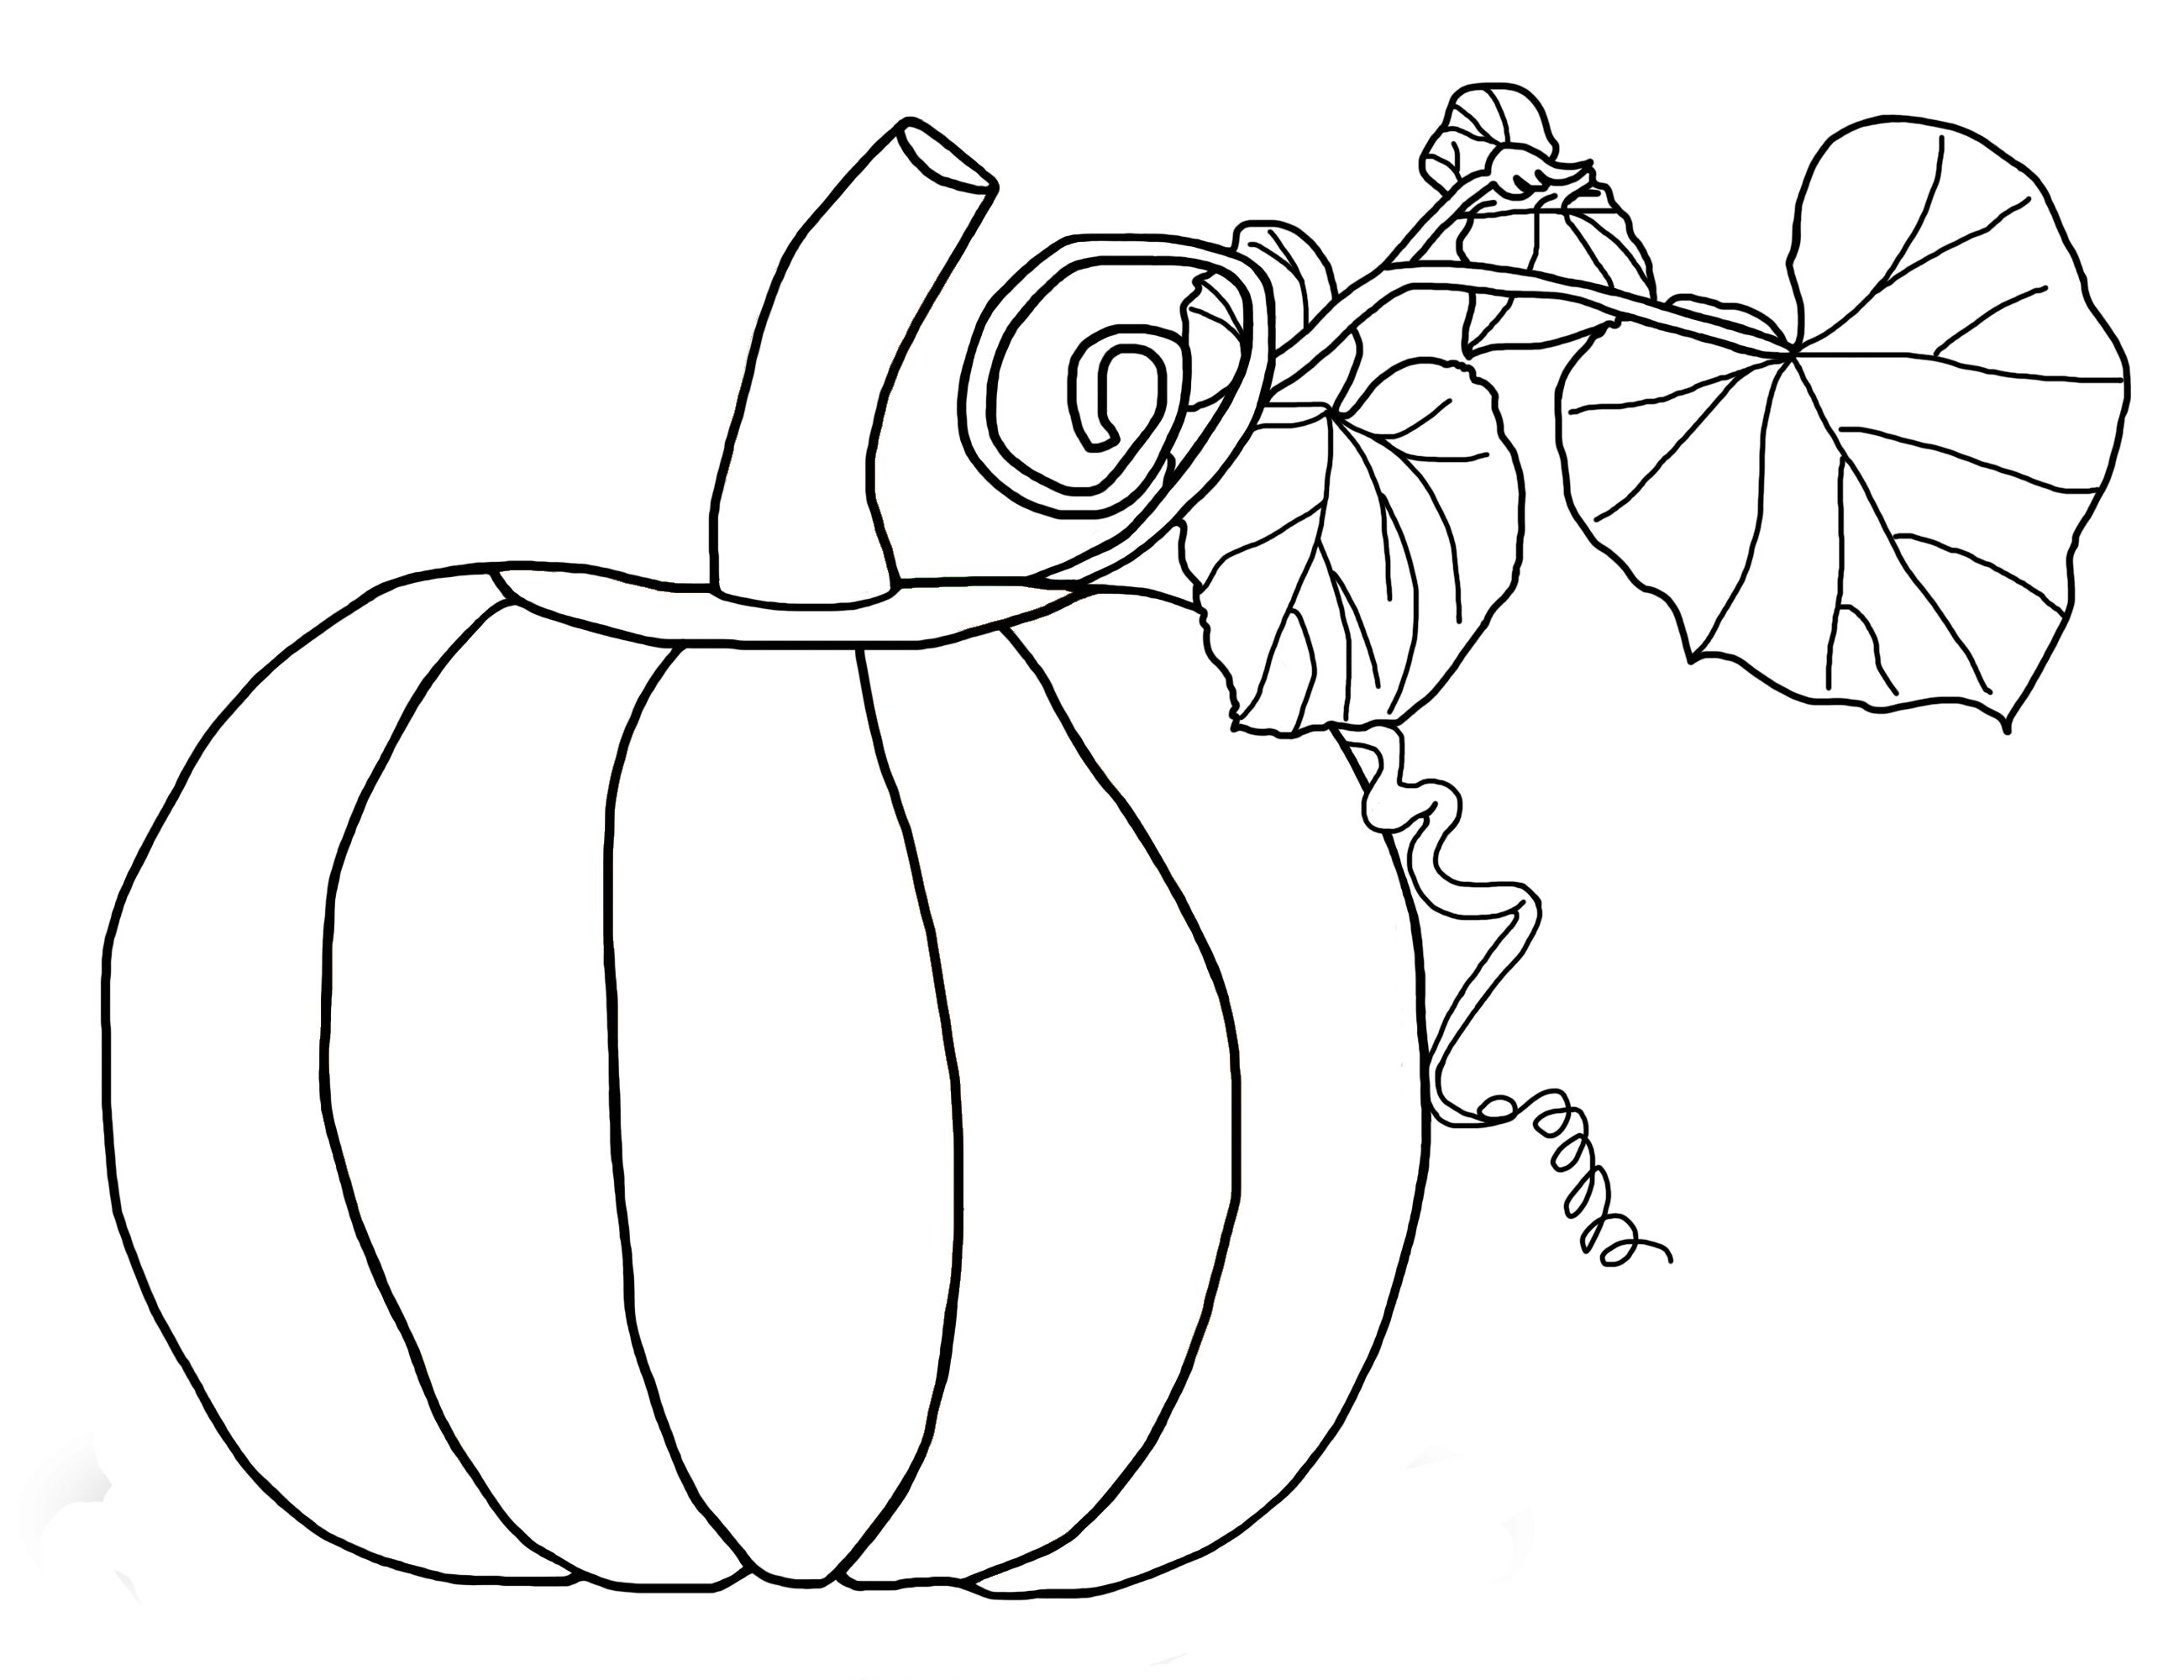 pumpkin coloring pages free printable free printable pumpkin coloring pages for kids pumpkin pumpkin free coloring printable pages